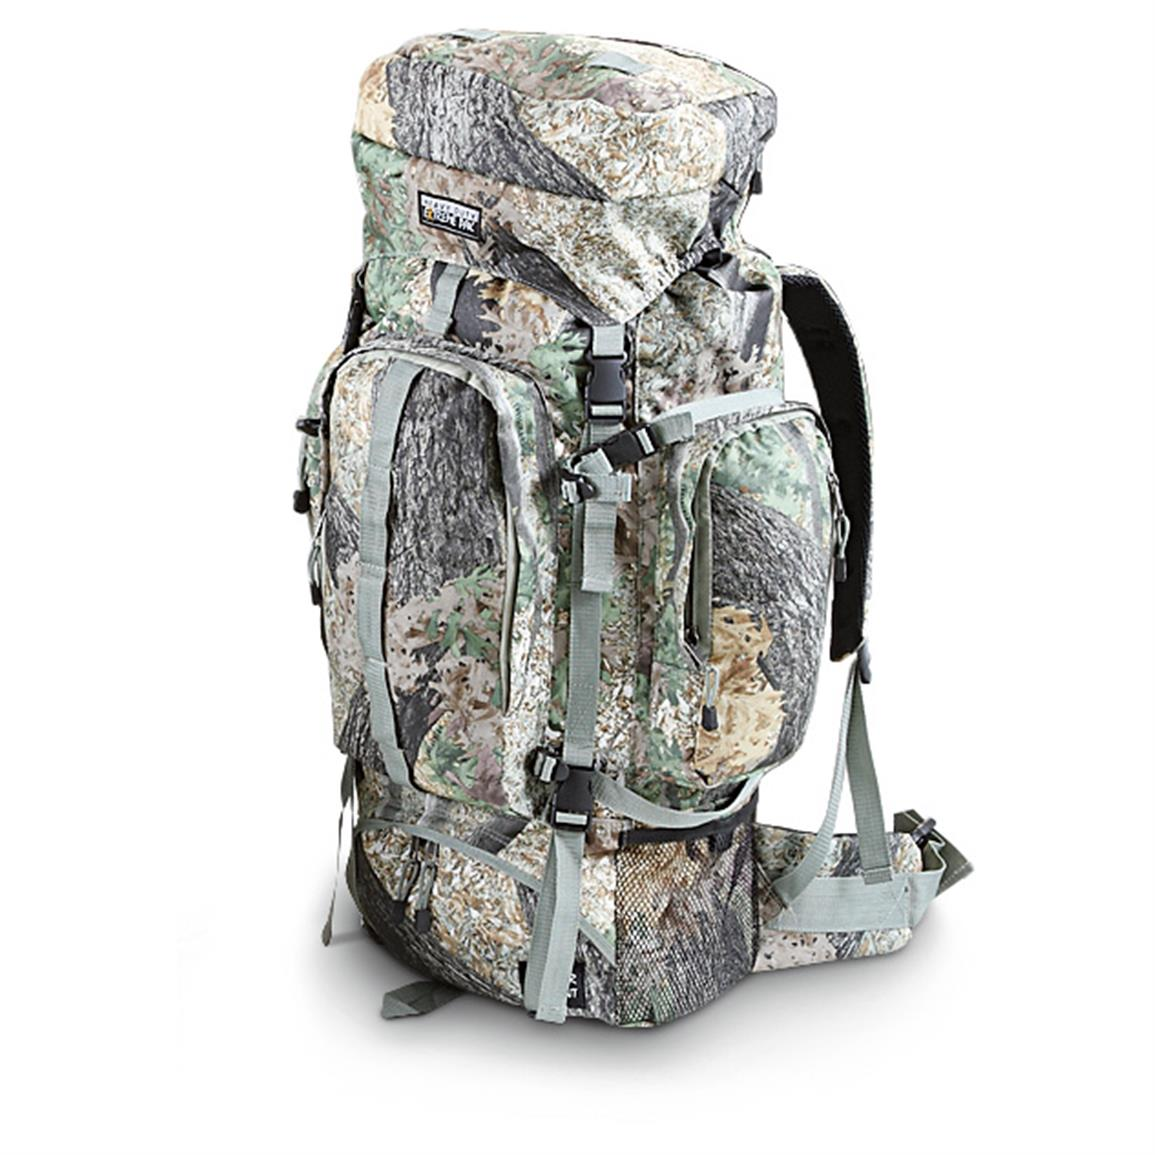 Extreme Pak Invisible Tree Camo Backpack • Padded shoulder and waist straps